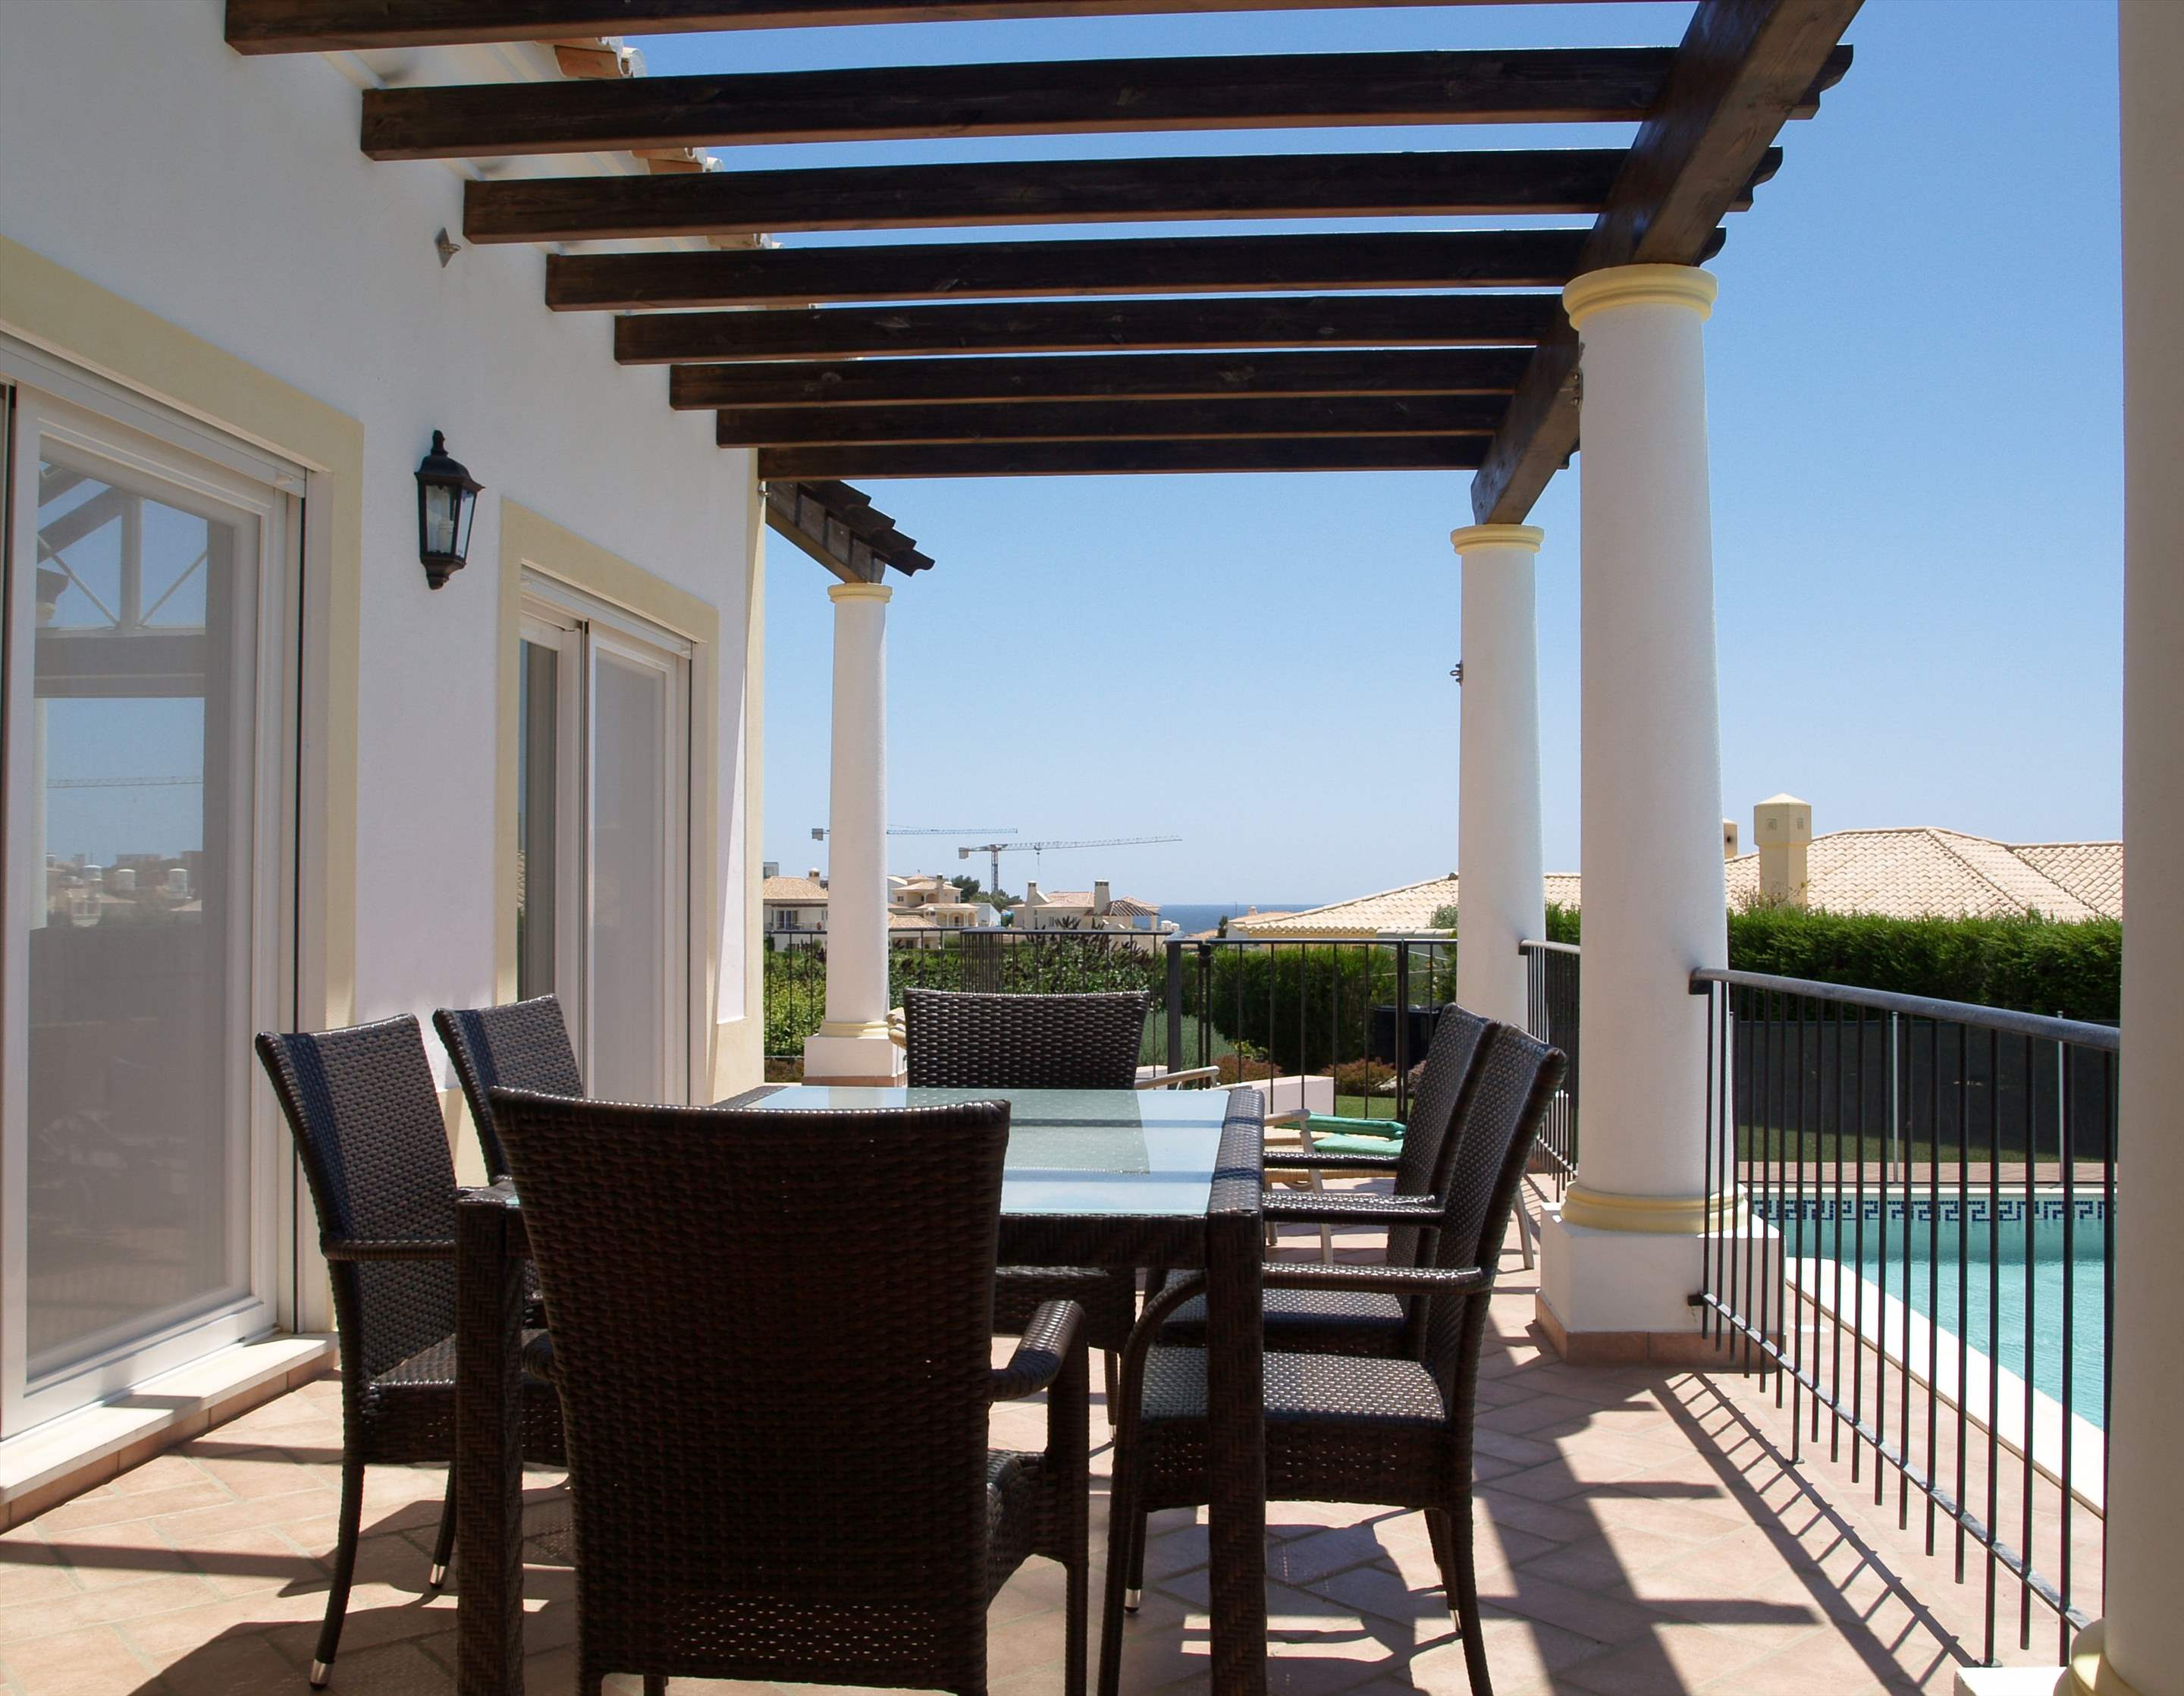 Martinhal Luxury Villa No.8, Three Bedroom Villa, 3 bedroom villa in Martinhal Sagres, Algarve Photo #7